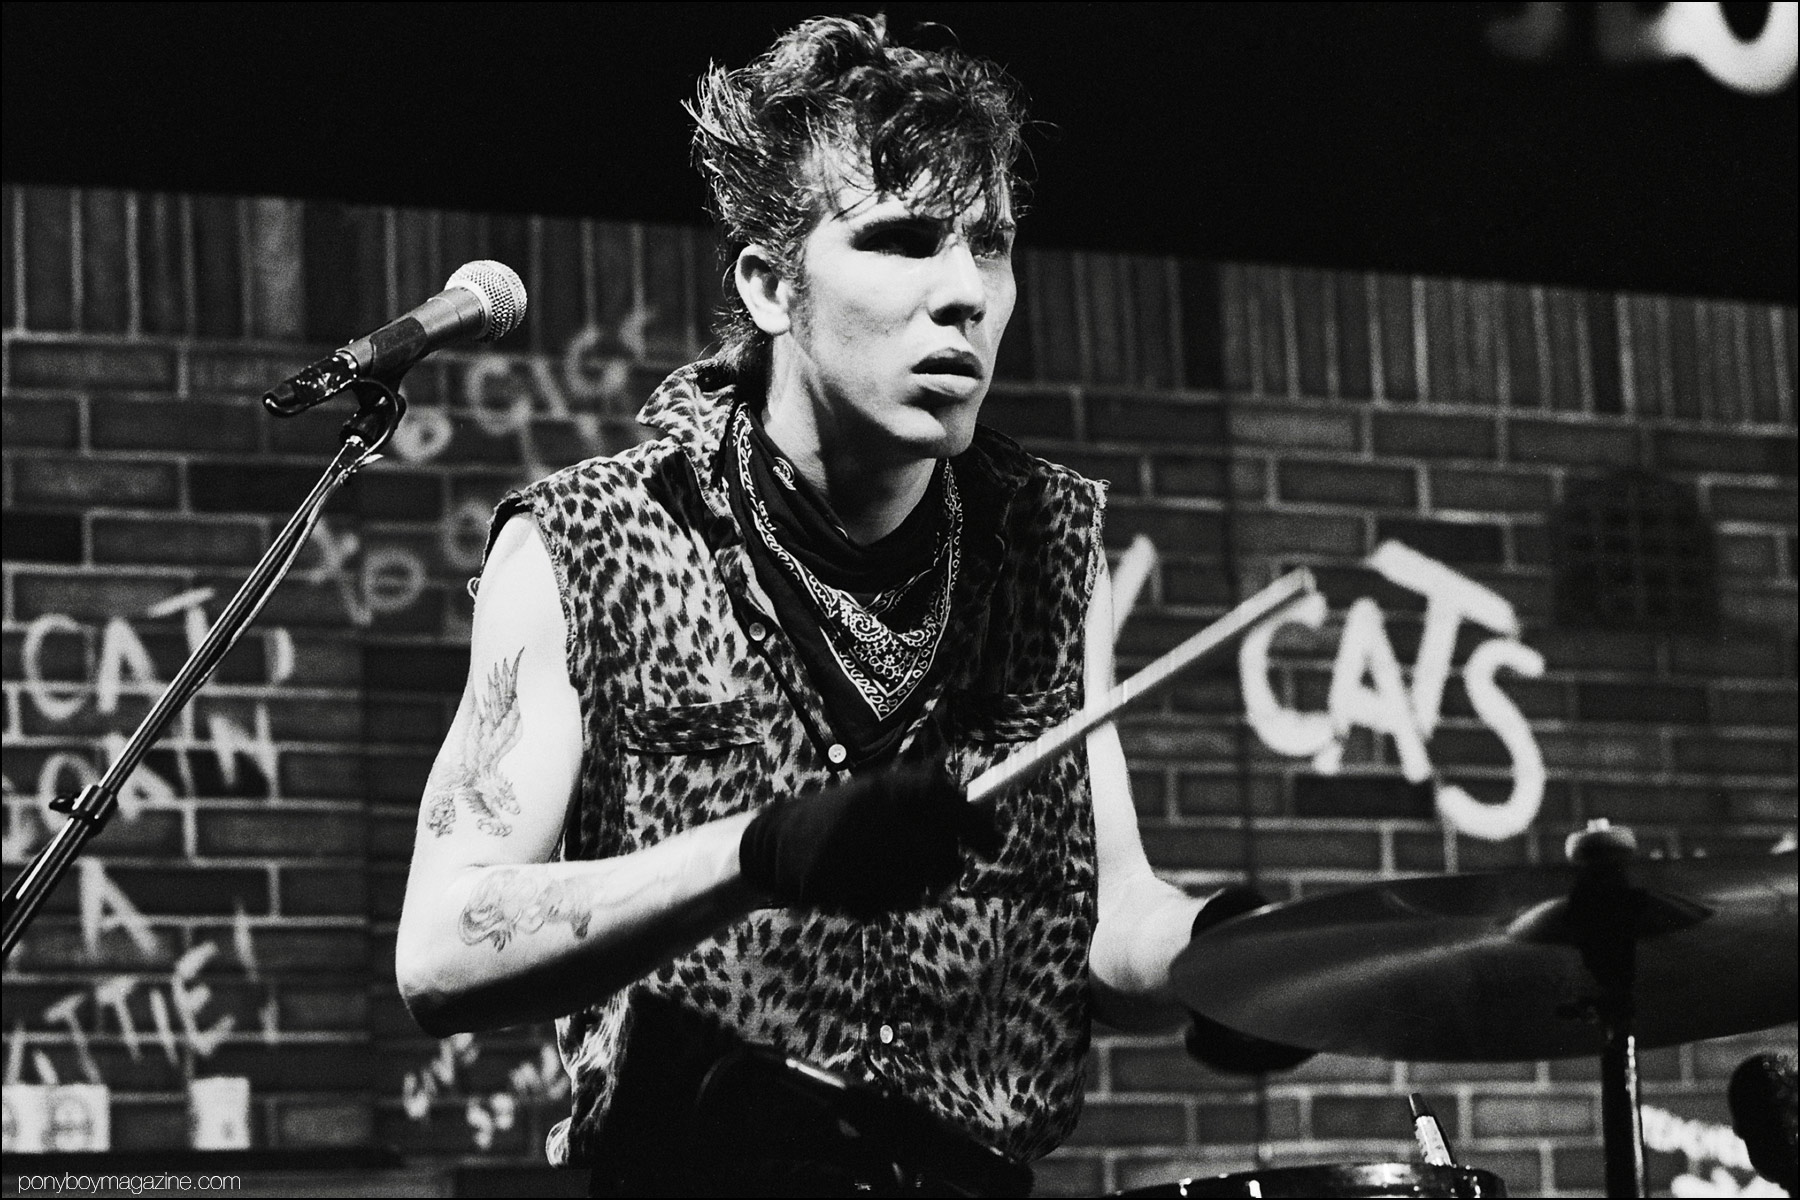 Slim Jim Phantom, drummer for neo-rockabilly band Stray Cats. photographed by Manfred Becker. Ponyboy magazine NY.